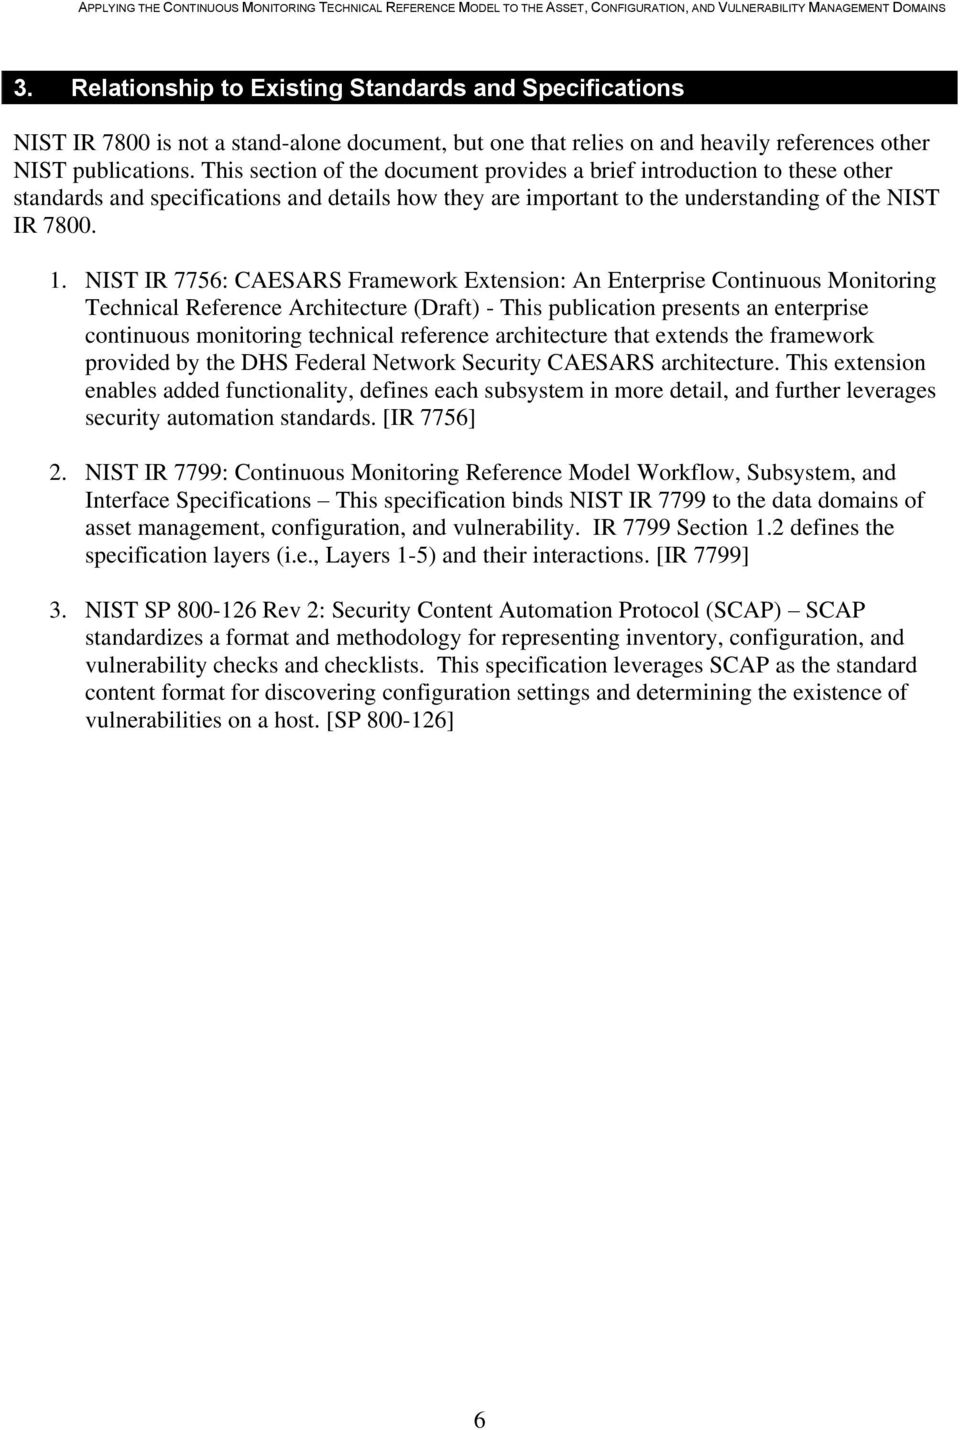 NIST IR 7756: CAESARS Framework Extension: An Enterprise Continuous Monitoring Technical Reference Architecture (Draft) - This publication presents an enterprise continuous monitoring technical